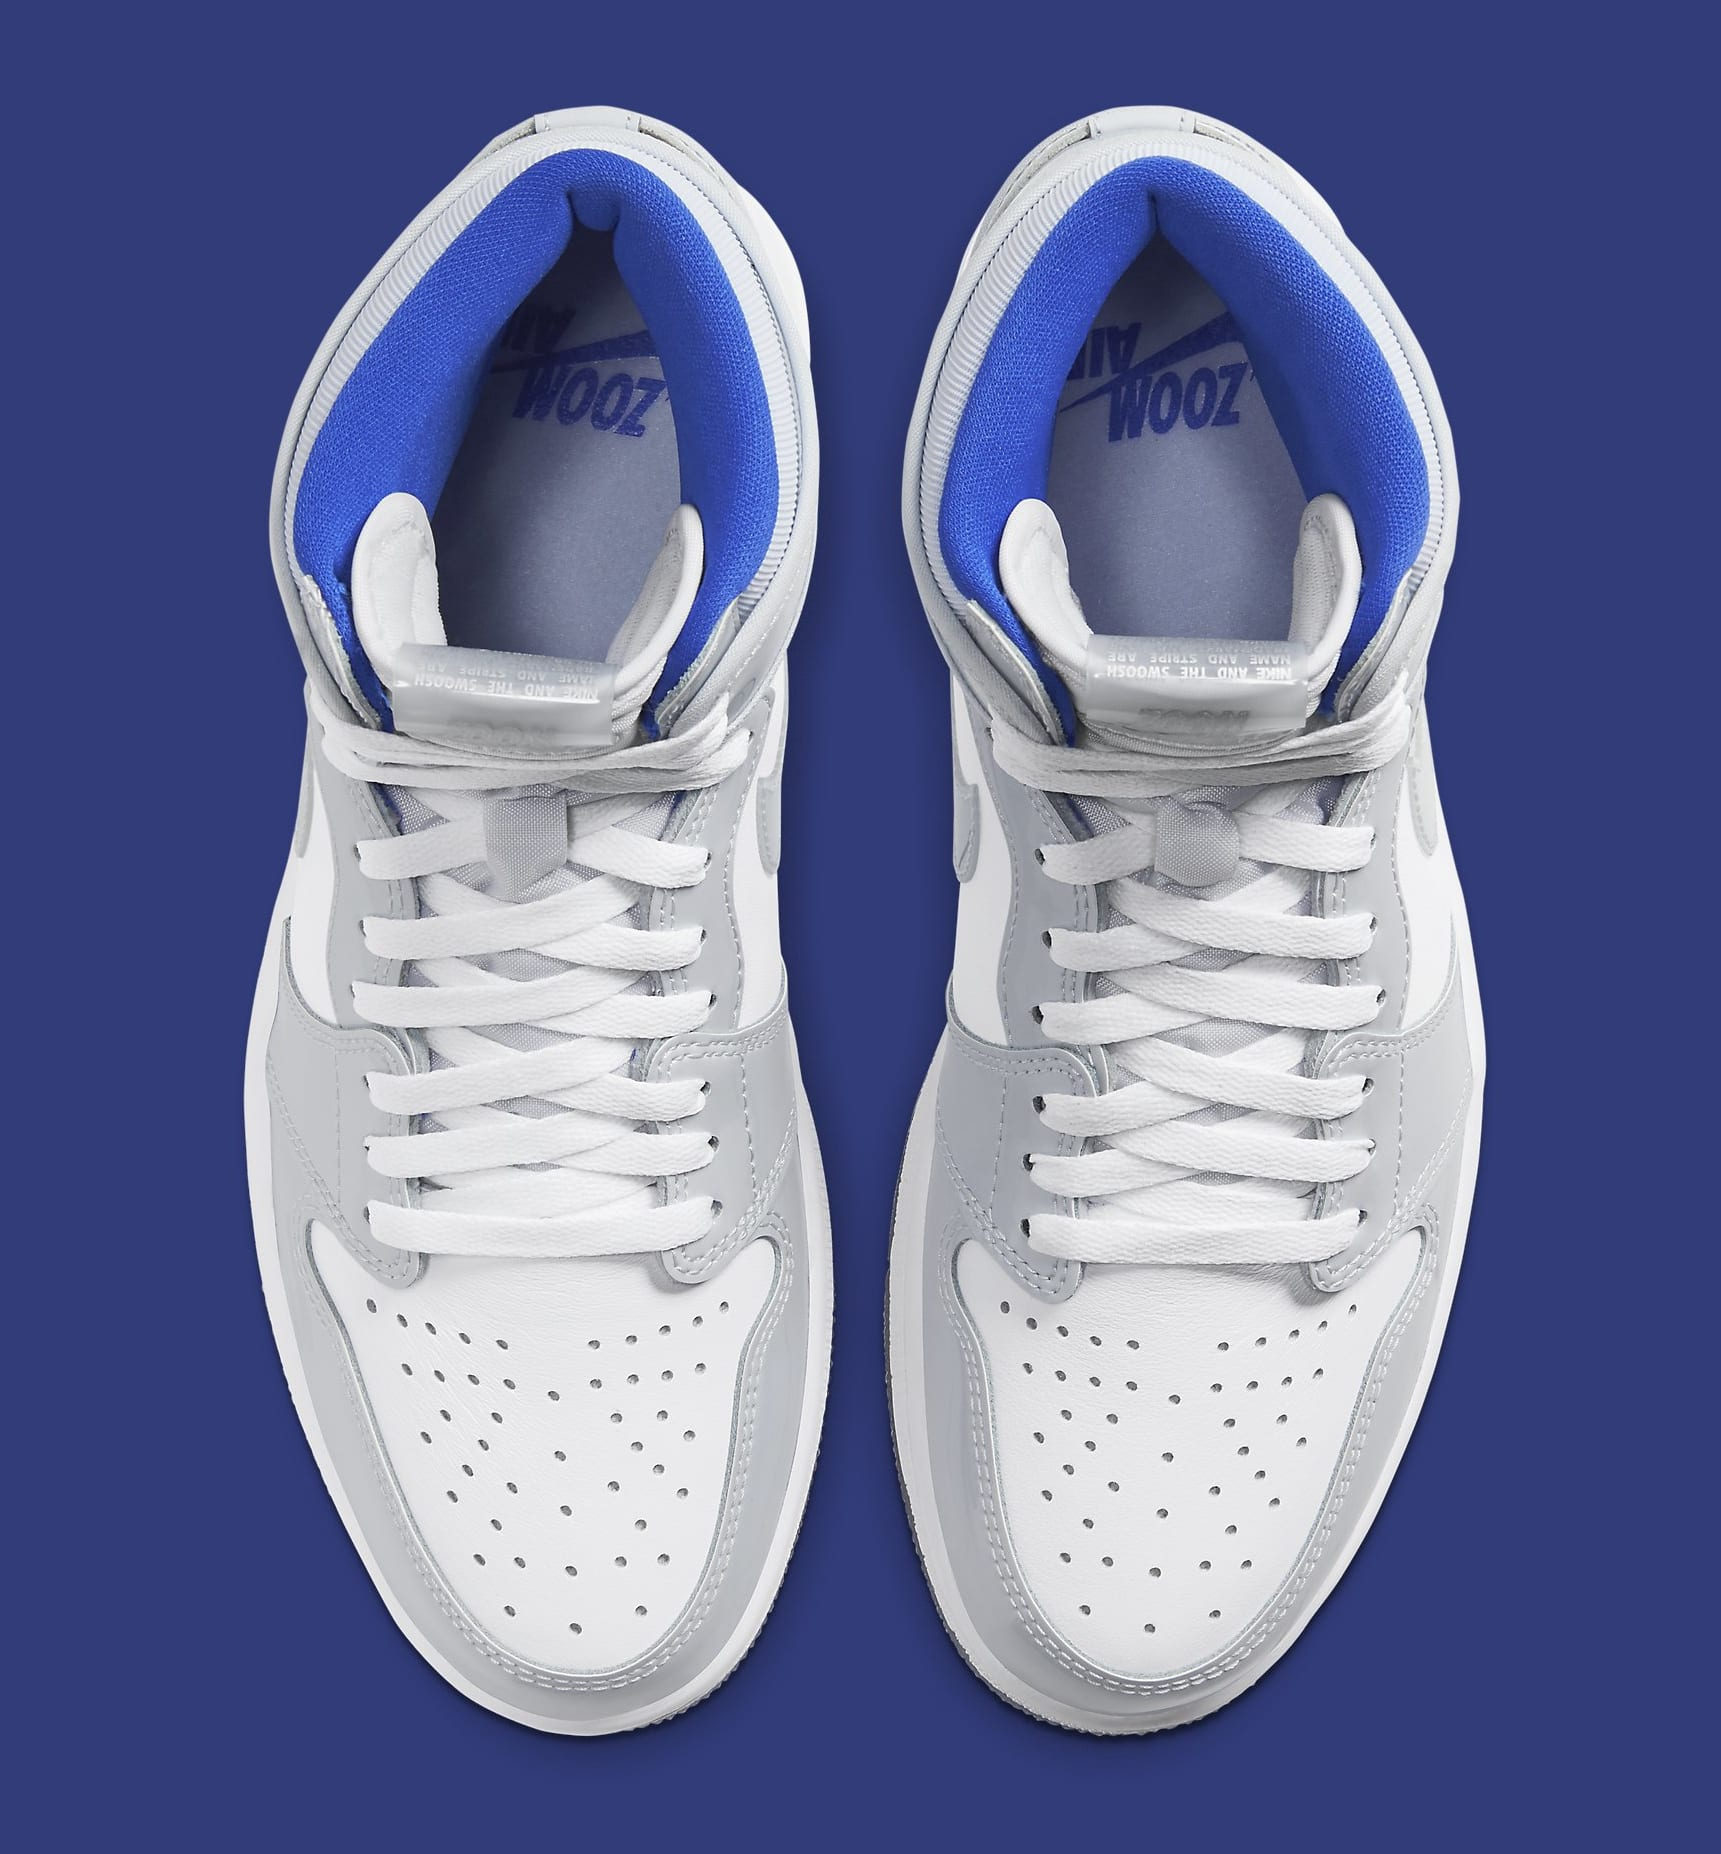 air-jordan-1-high-zoom-racer-blue-ck6637-104-top